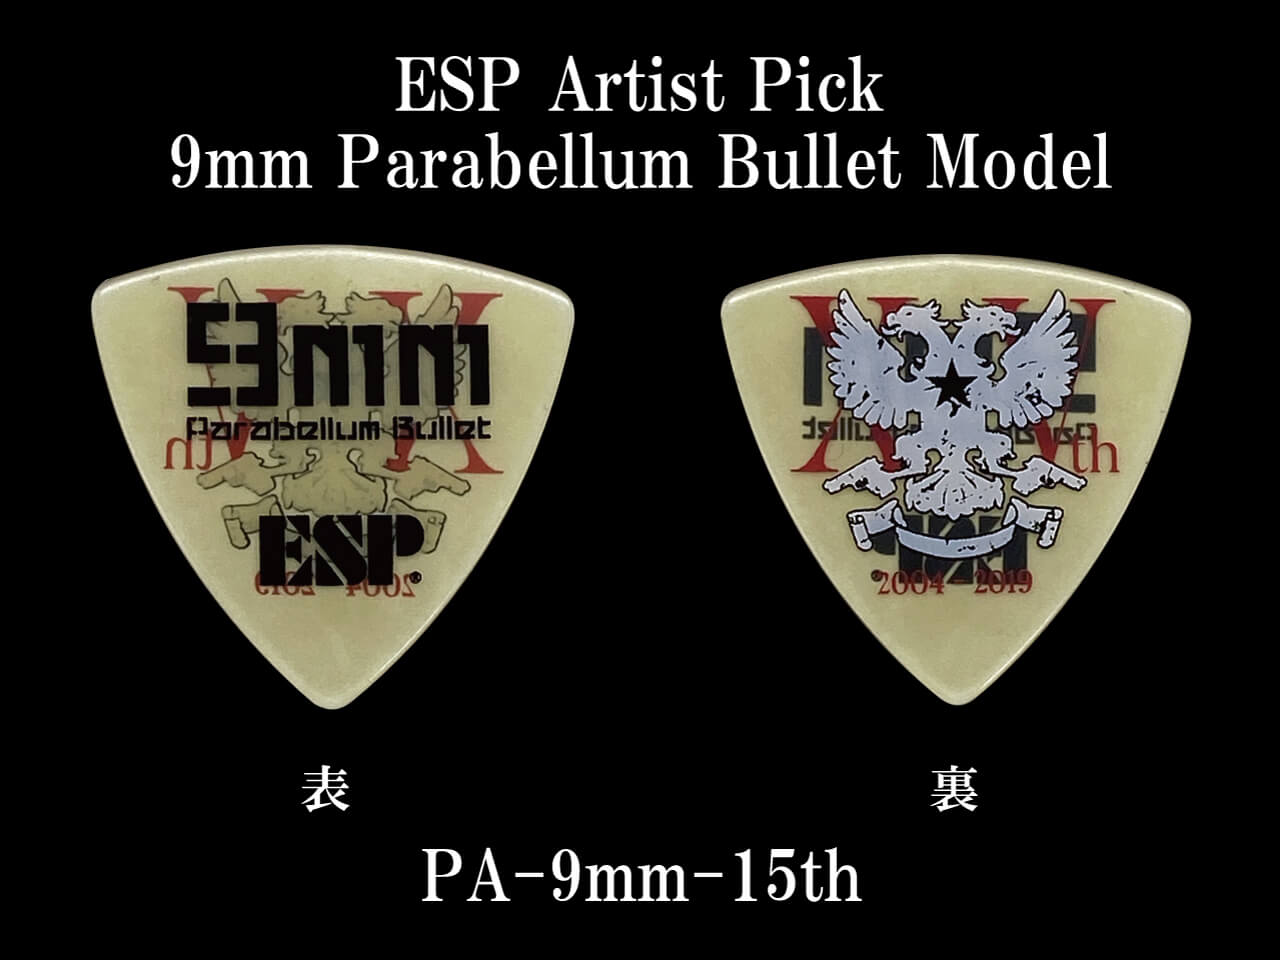 ESP(イーエスピー) Artist Pick Series PA-9mm-15th (9mm Parabellum Bullet Model)【3000枚限定】